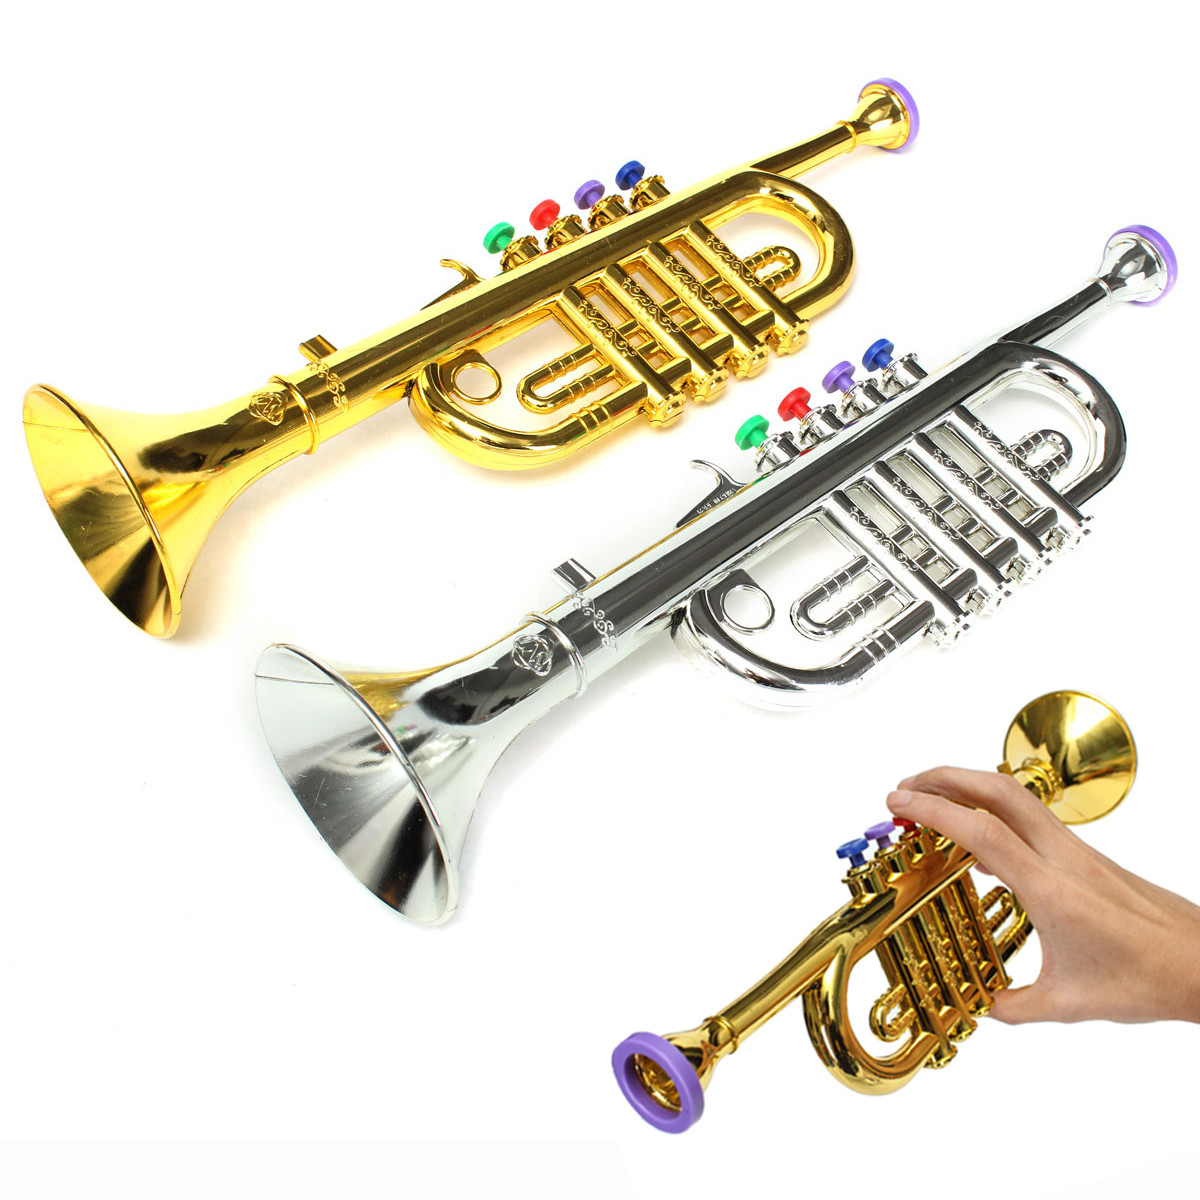 Mini Horn Trumpet Musical Music Instrument Kids Children Education Toys Birthday Gift Golden / Silver